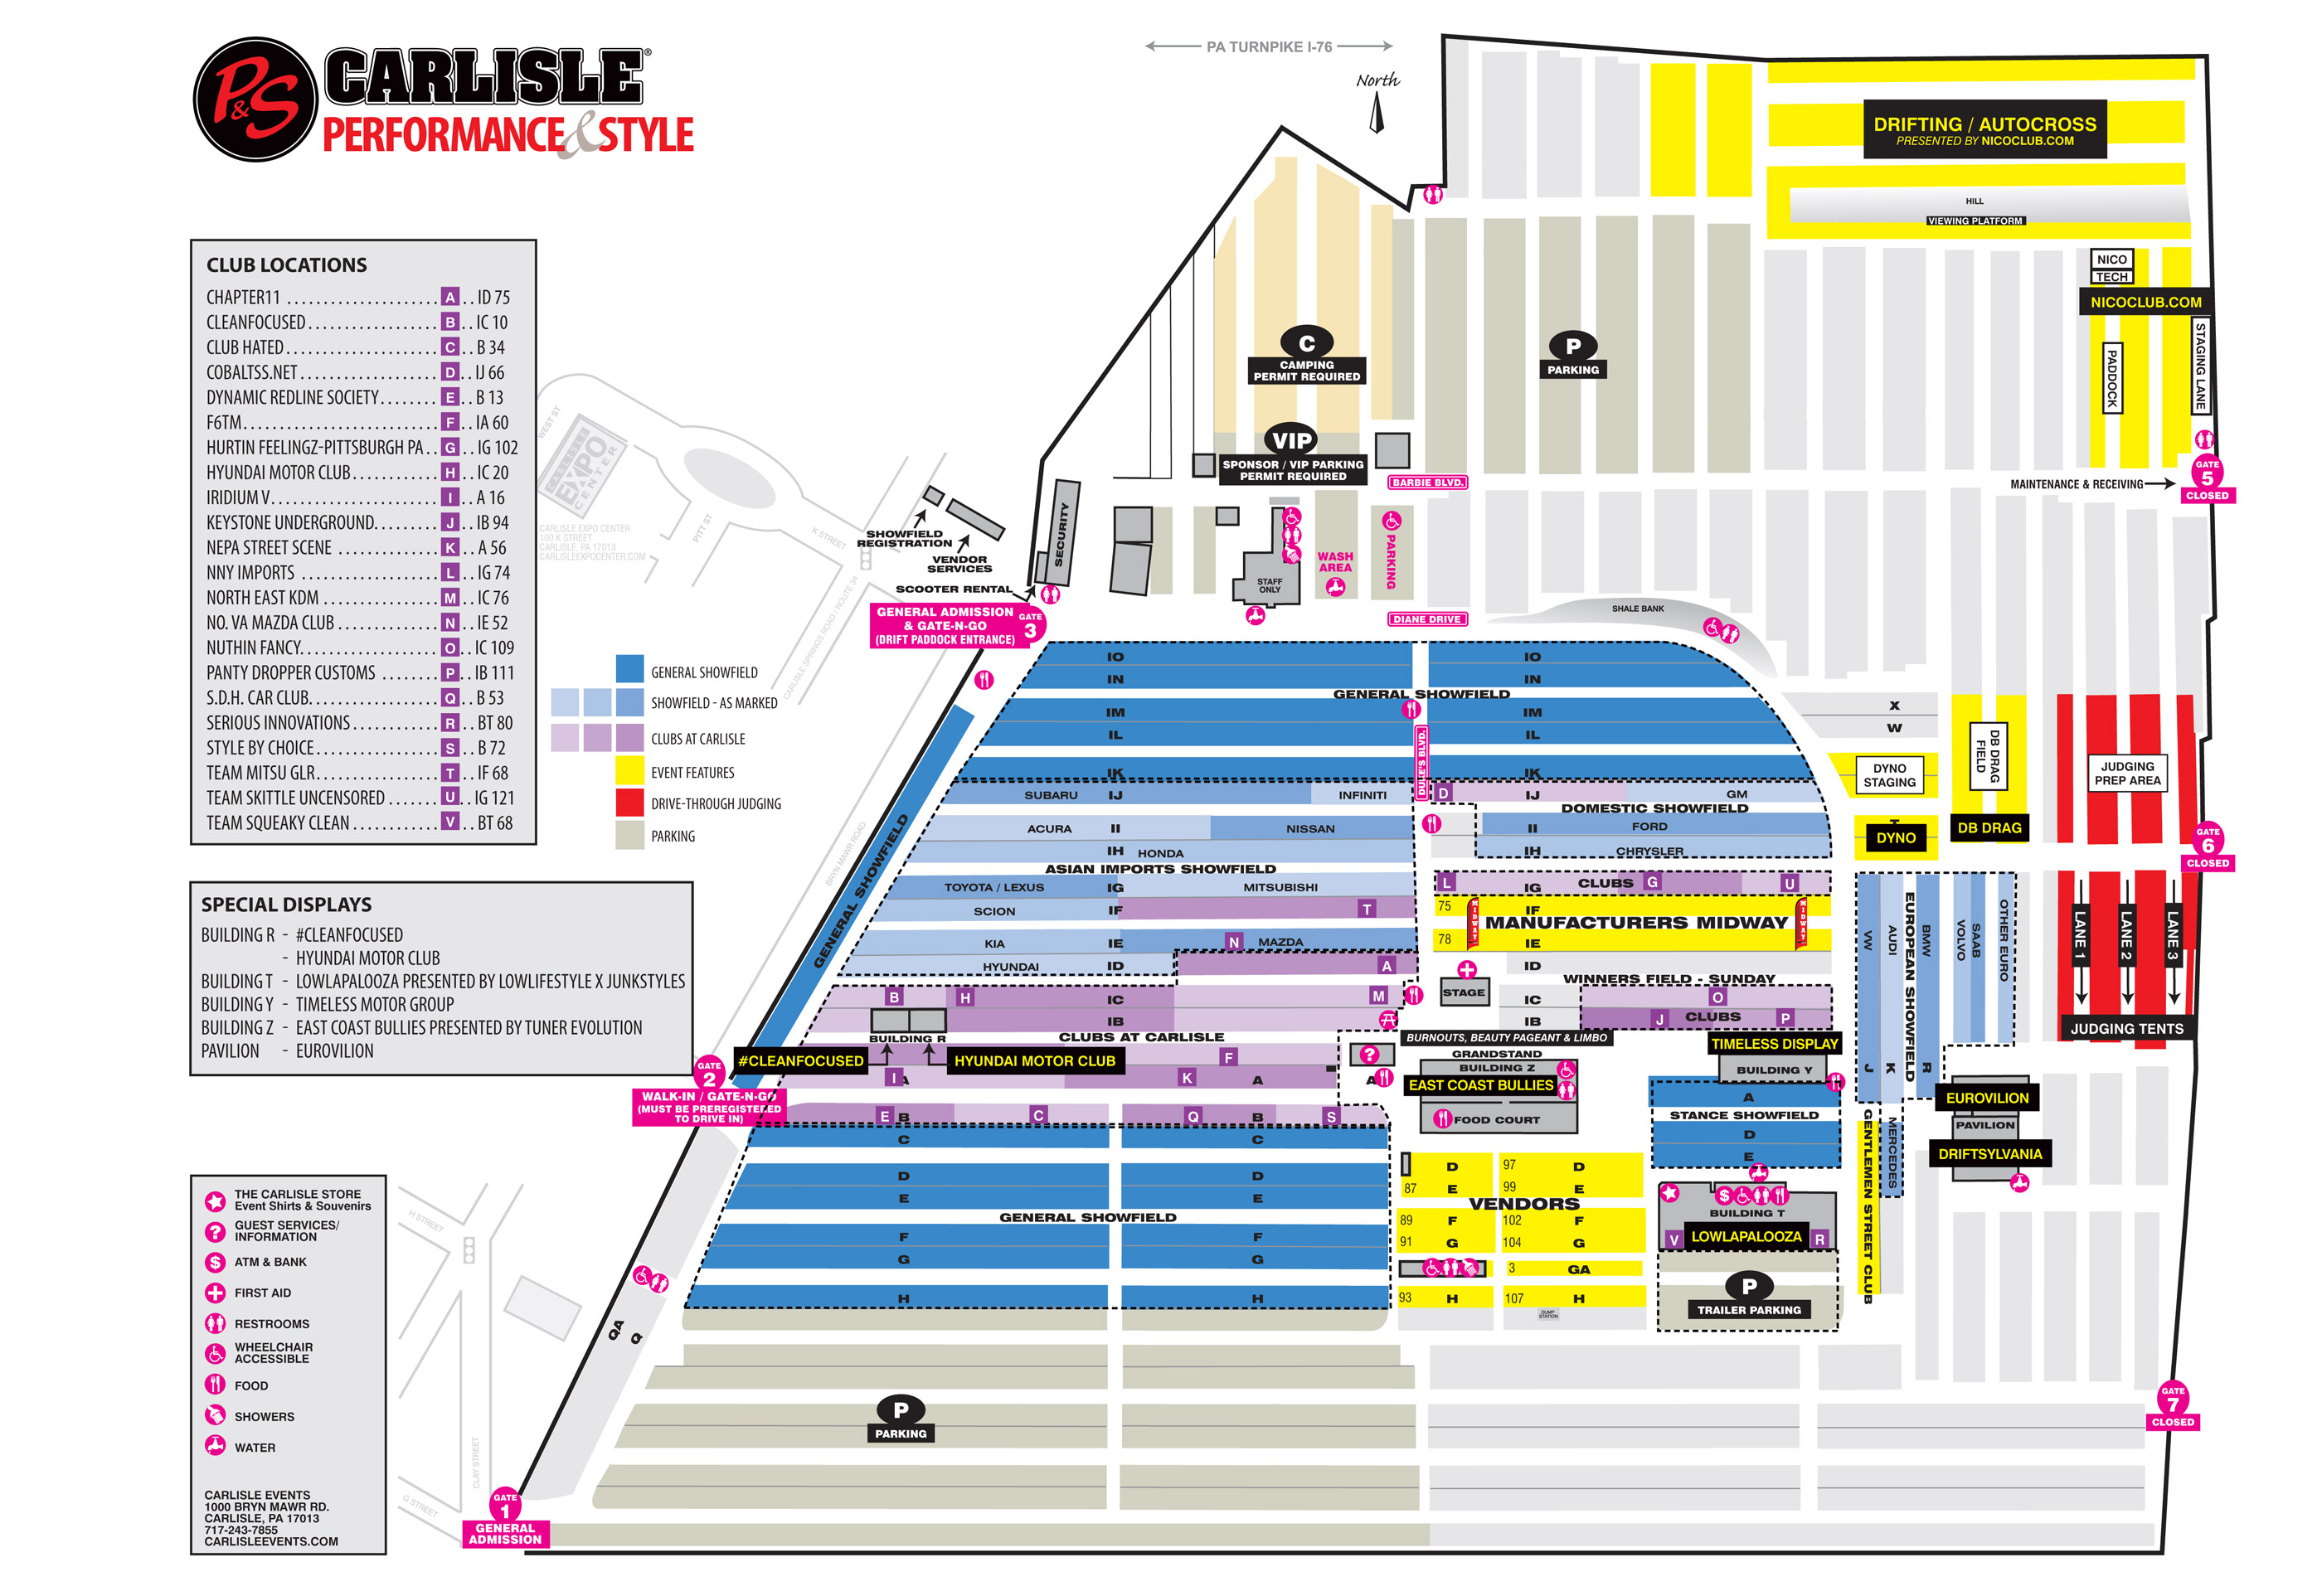 PASMAG-Carlisle-Performance-and-Style-2014-Map